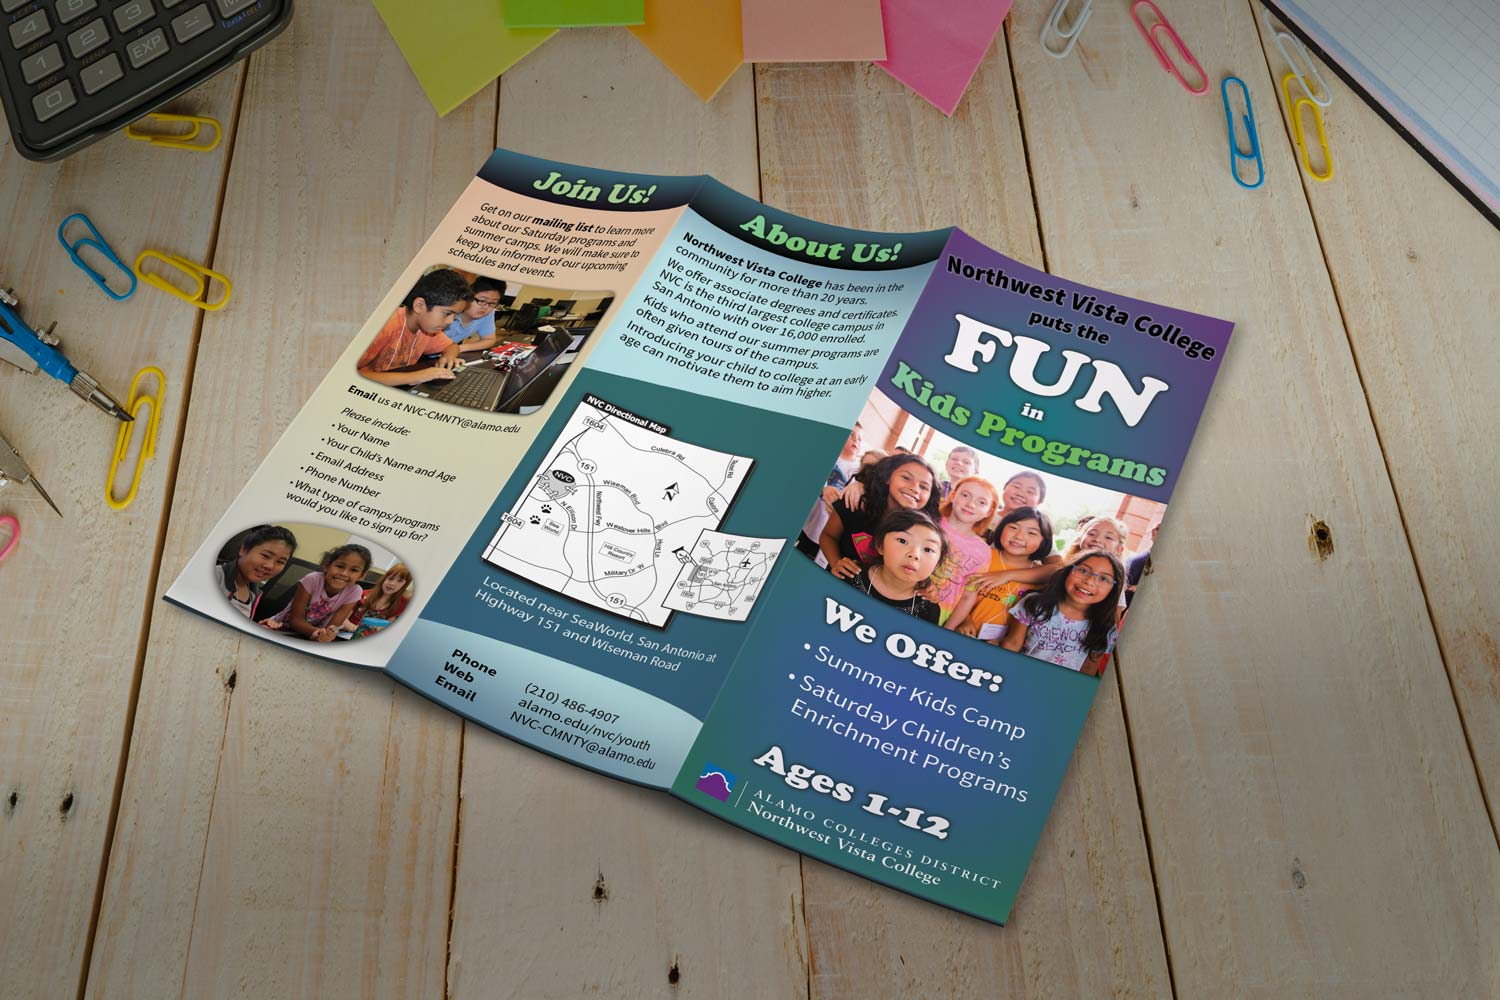 Join Us, About Us, brochure outside